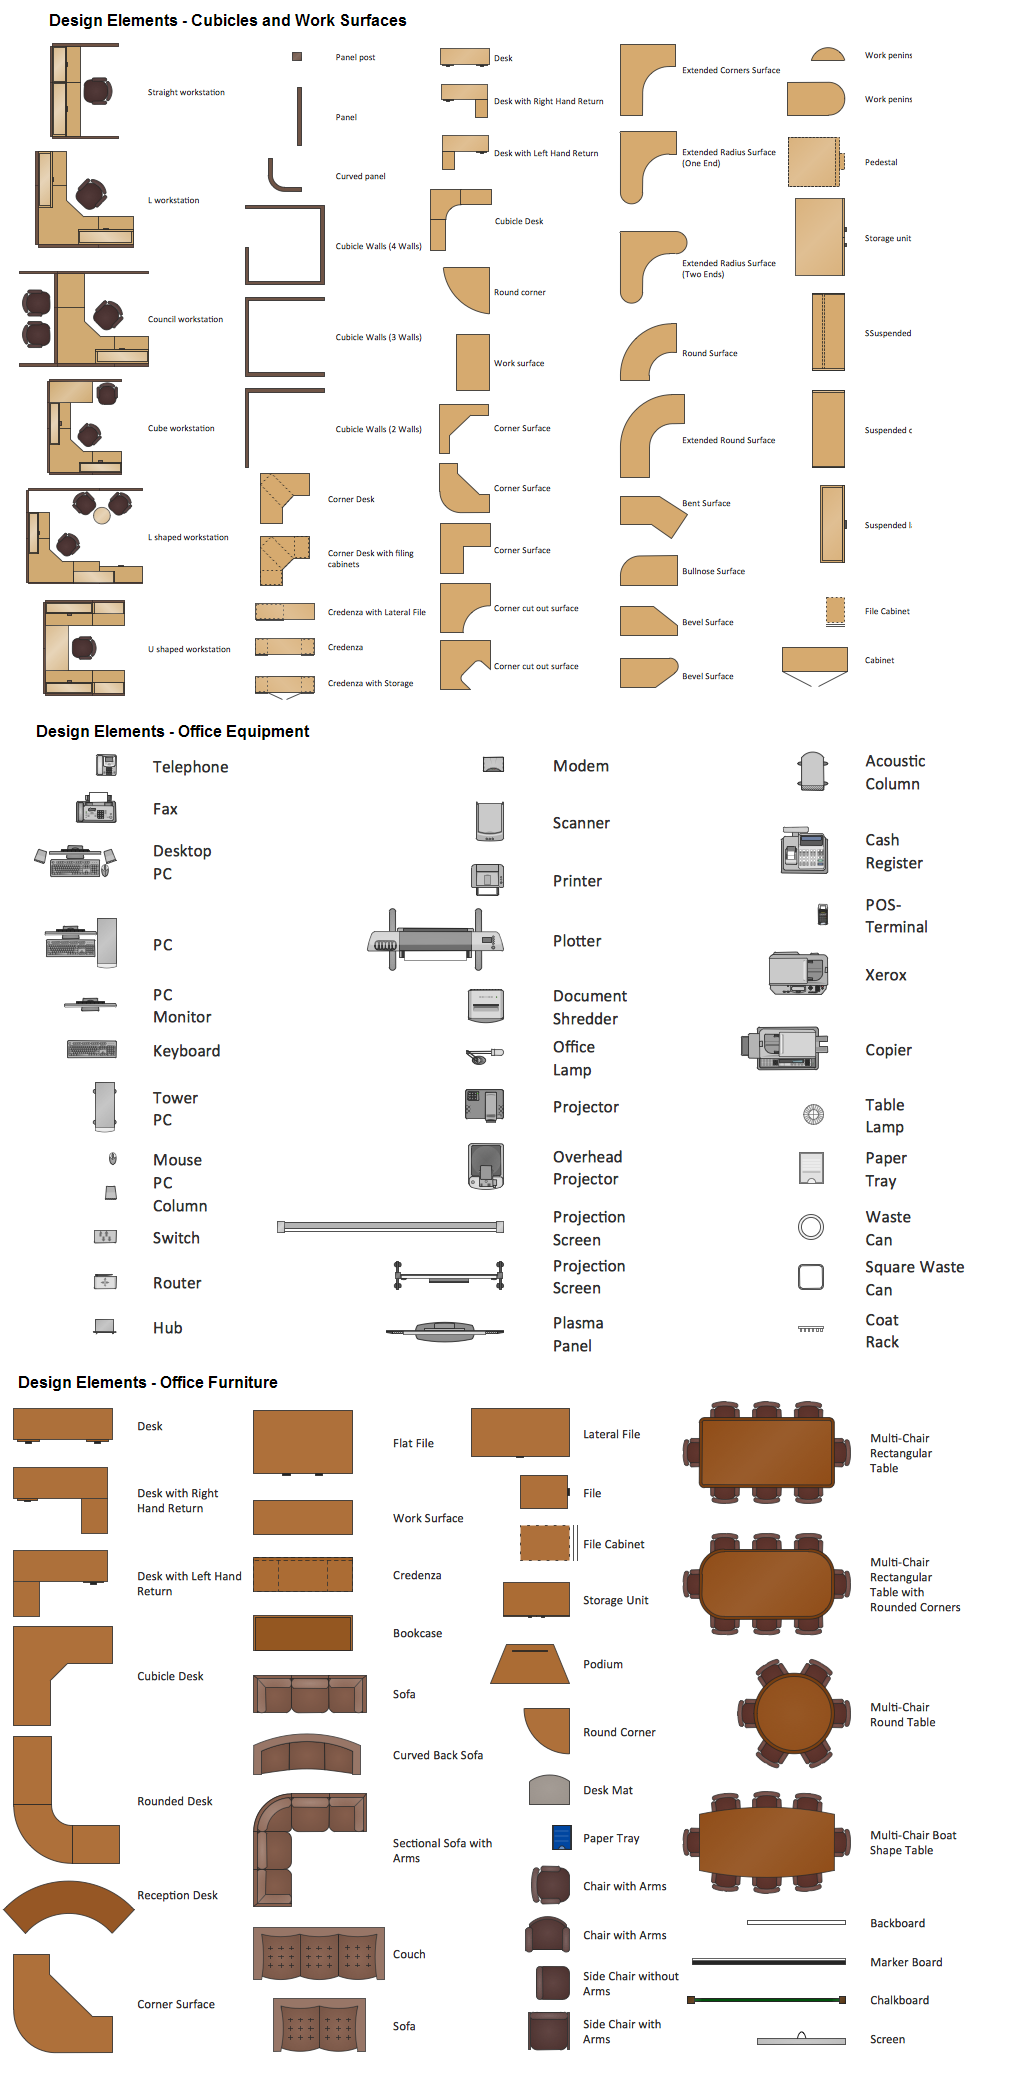 Office Layout Plan Symbols in 2019 | Office layout plan ... on floor plans garage, floor plan for transportation company, electrical plan for warehouse, building plans for warehouse, floor plans retail,